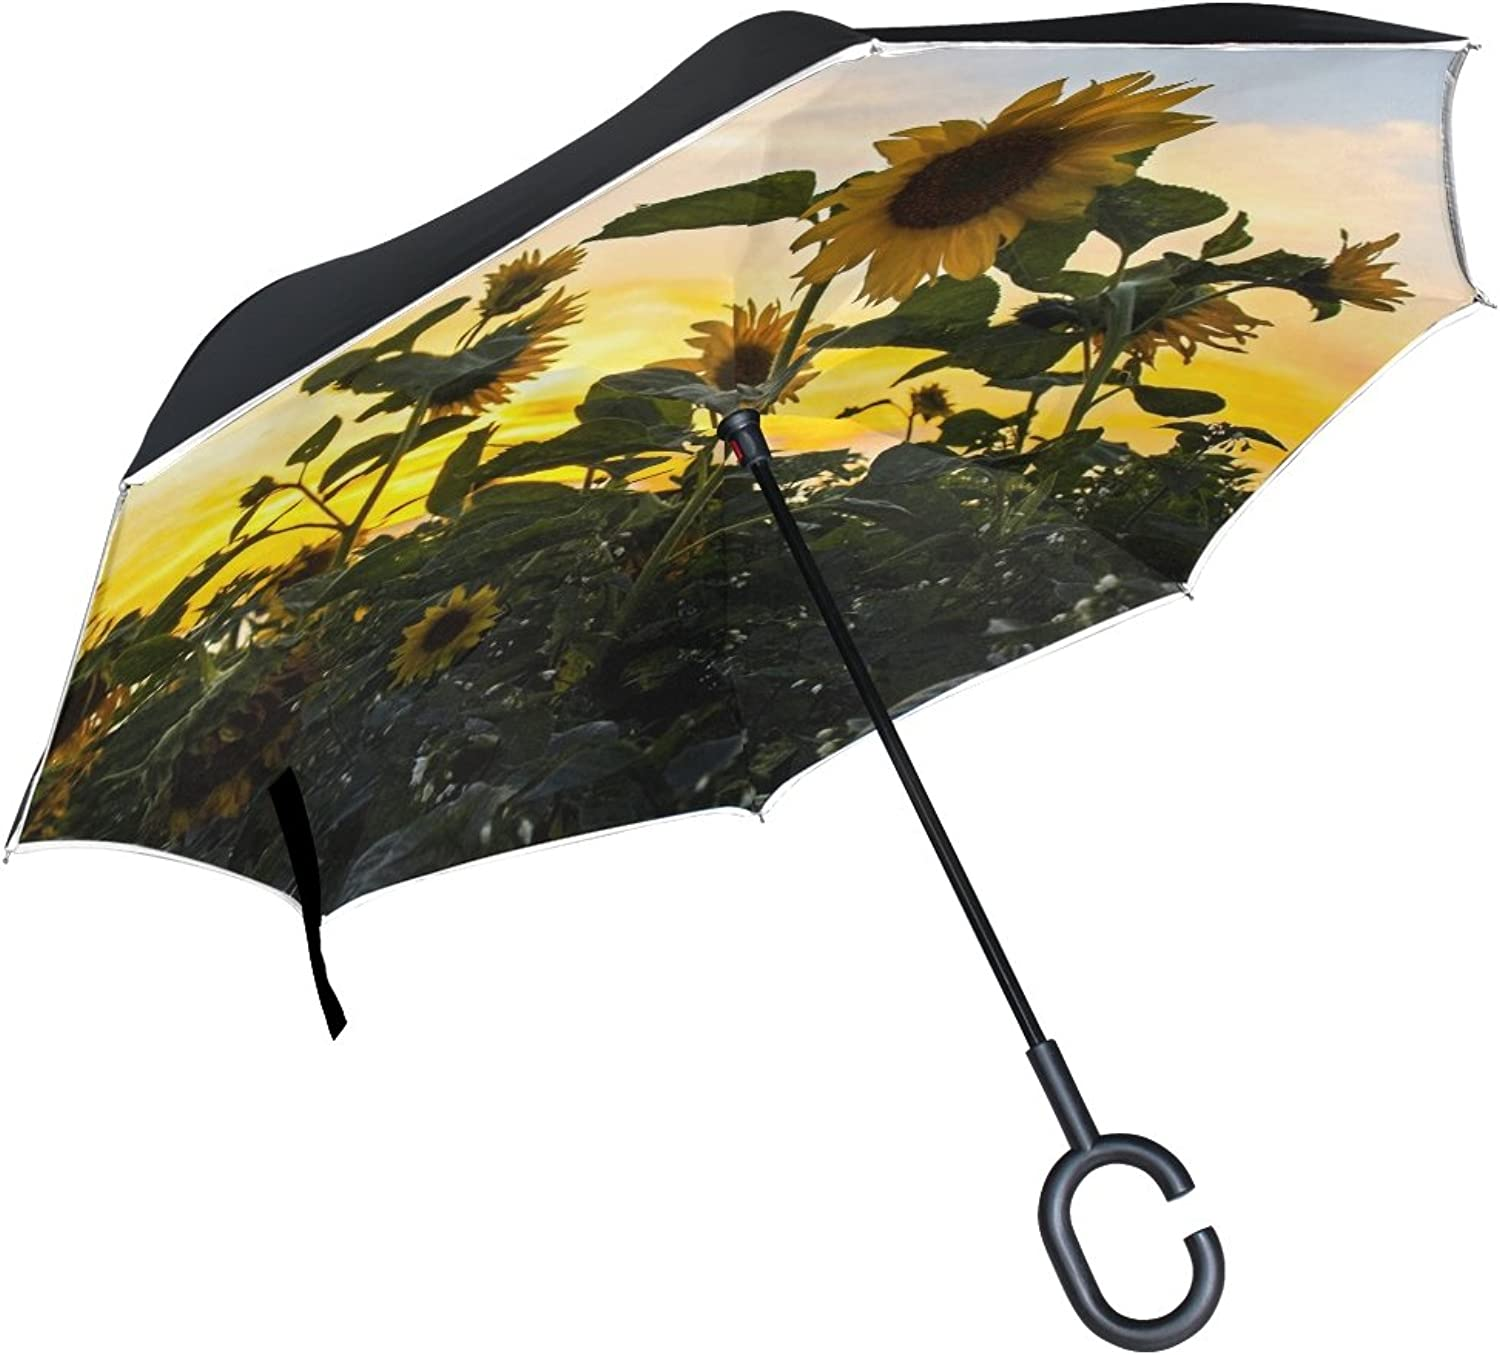 Double Layer Ingreened Landscape Sunset Dusk Sun Flower Umbrellas Reverse Folding Umbrella Windproof Uv Predection Big Straight Umbrella for Car Rain Outdoor with CShaped Handle